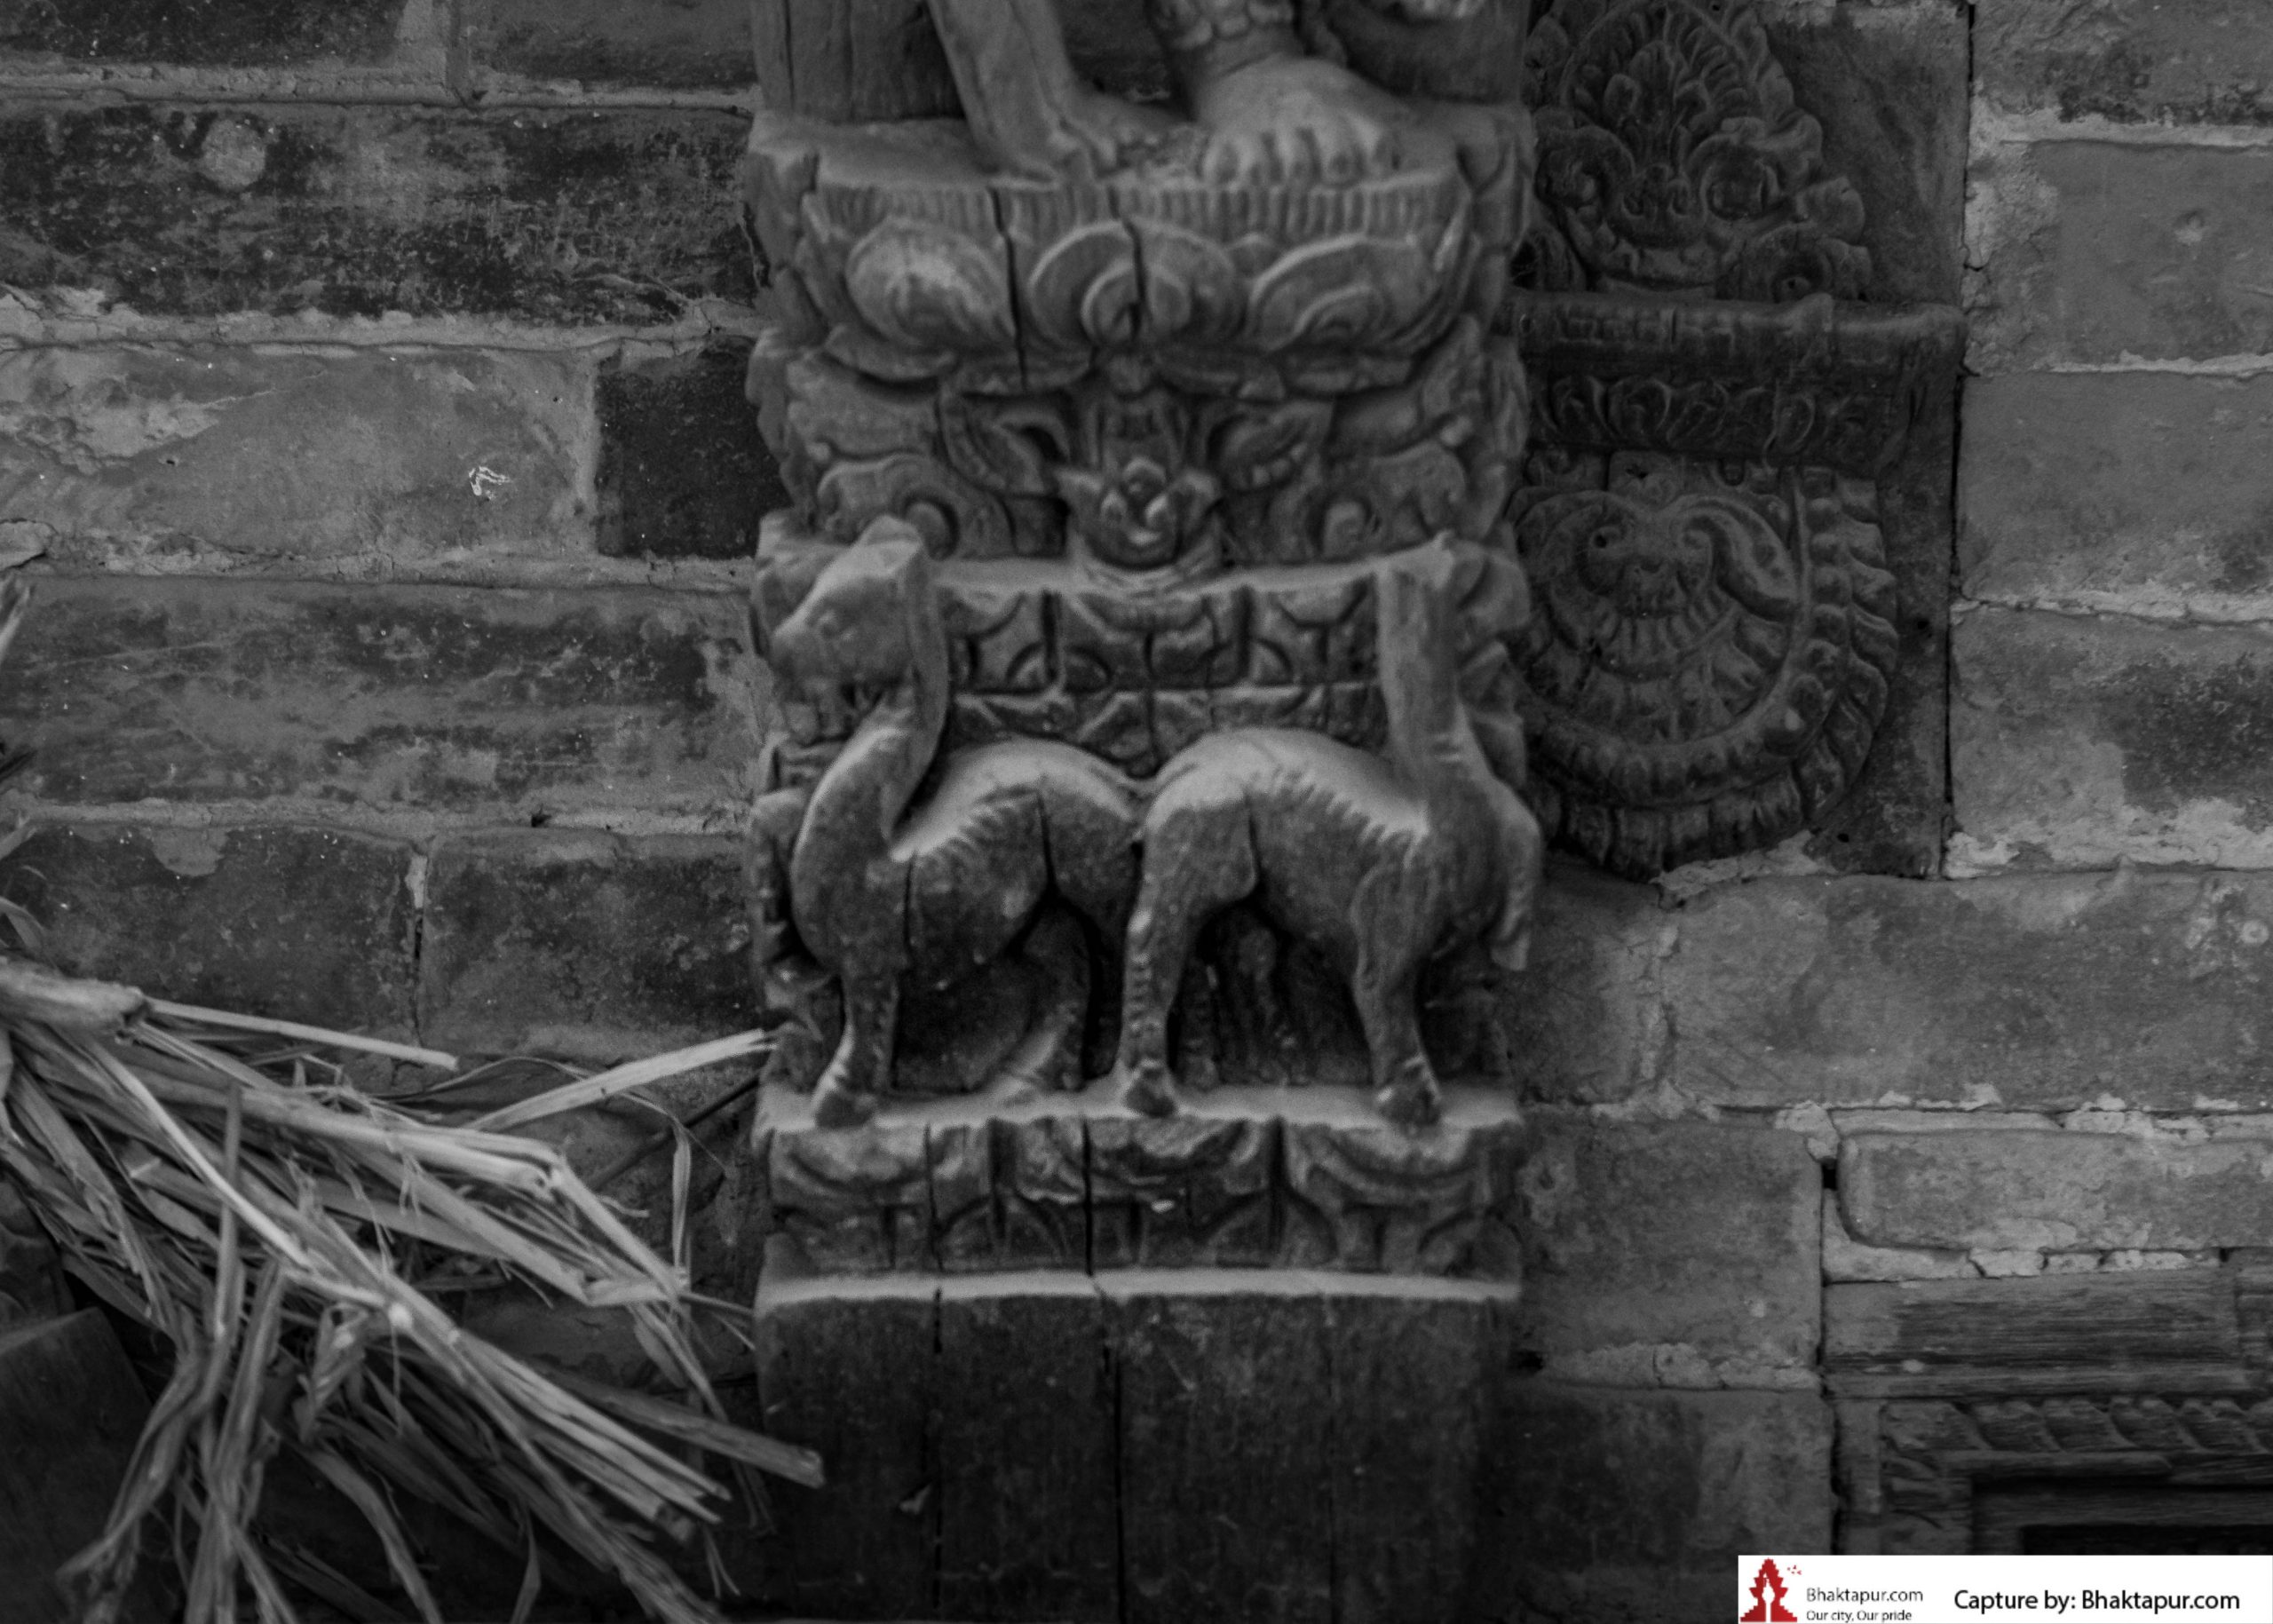 https://www.bhaktapur.com/wp-content/uploads/2021/08/erotic-carving-118-of-137-scaled.jpg